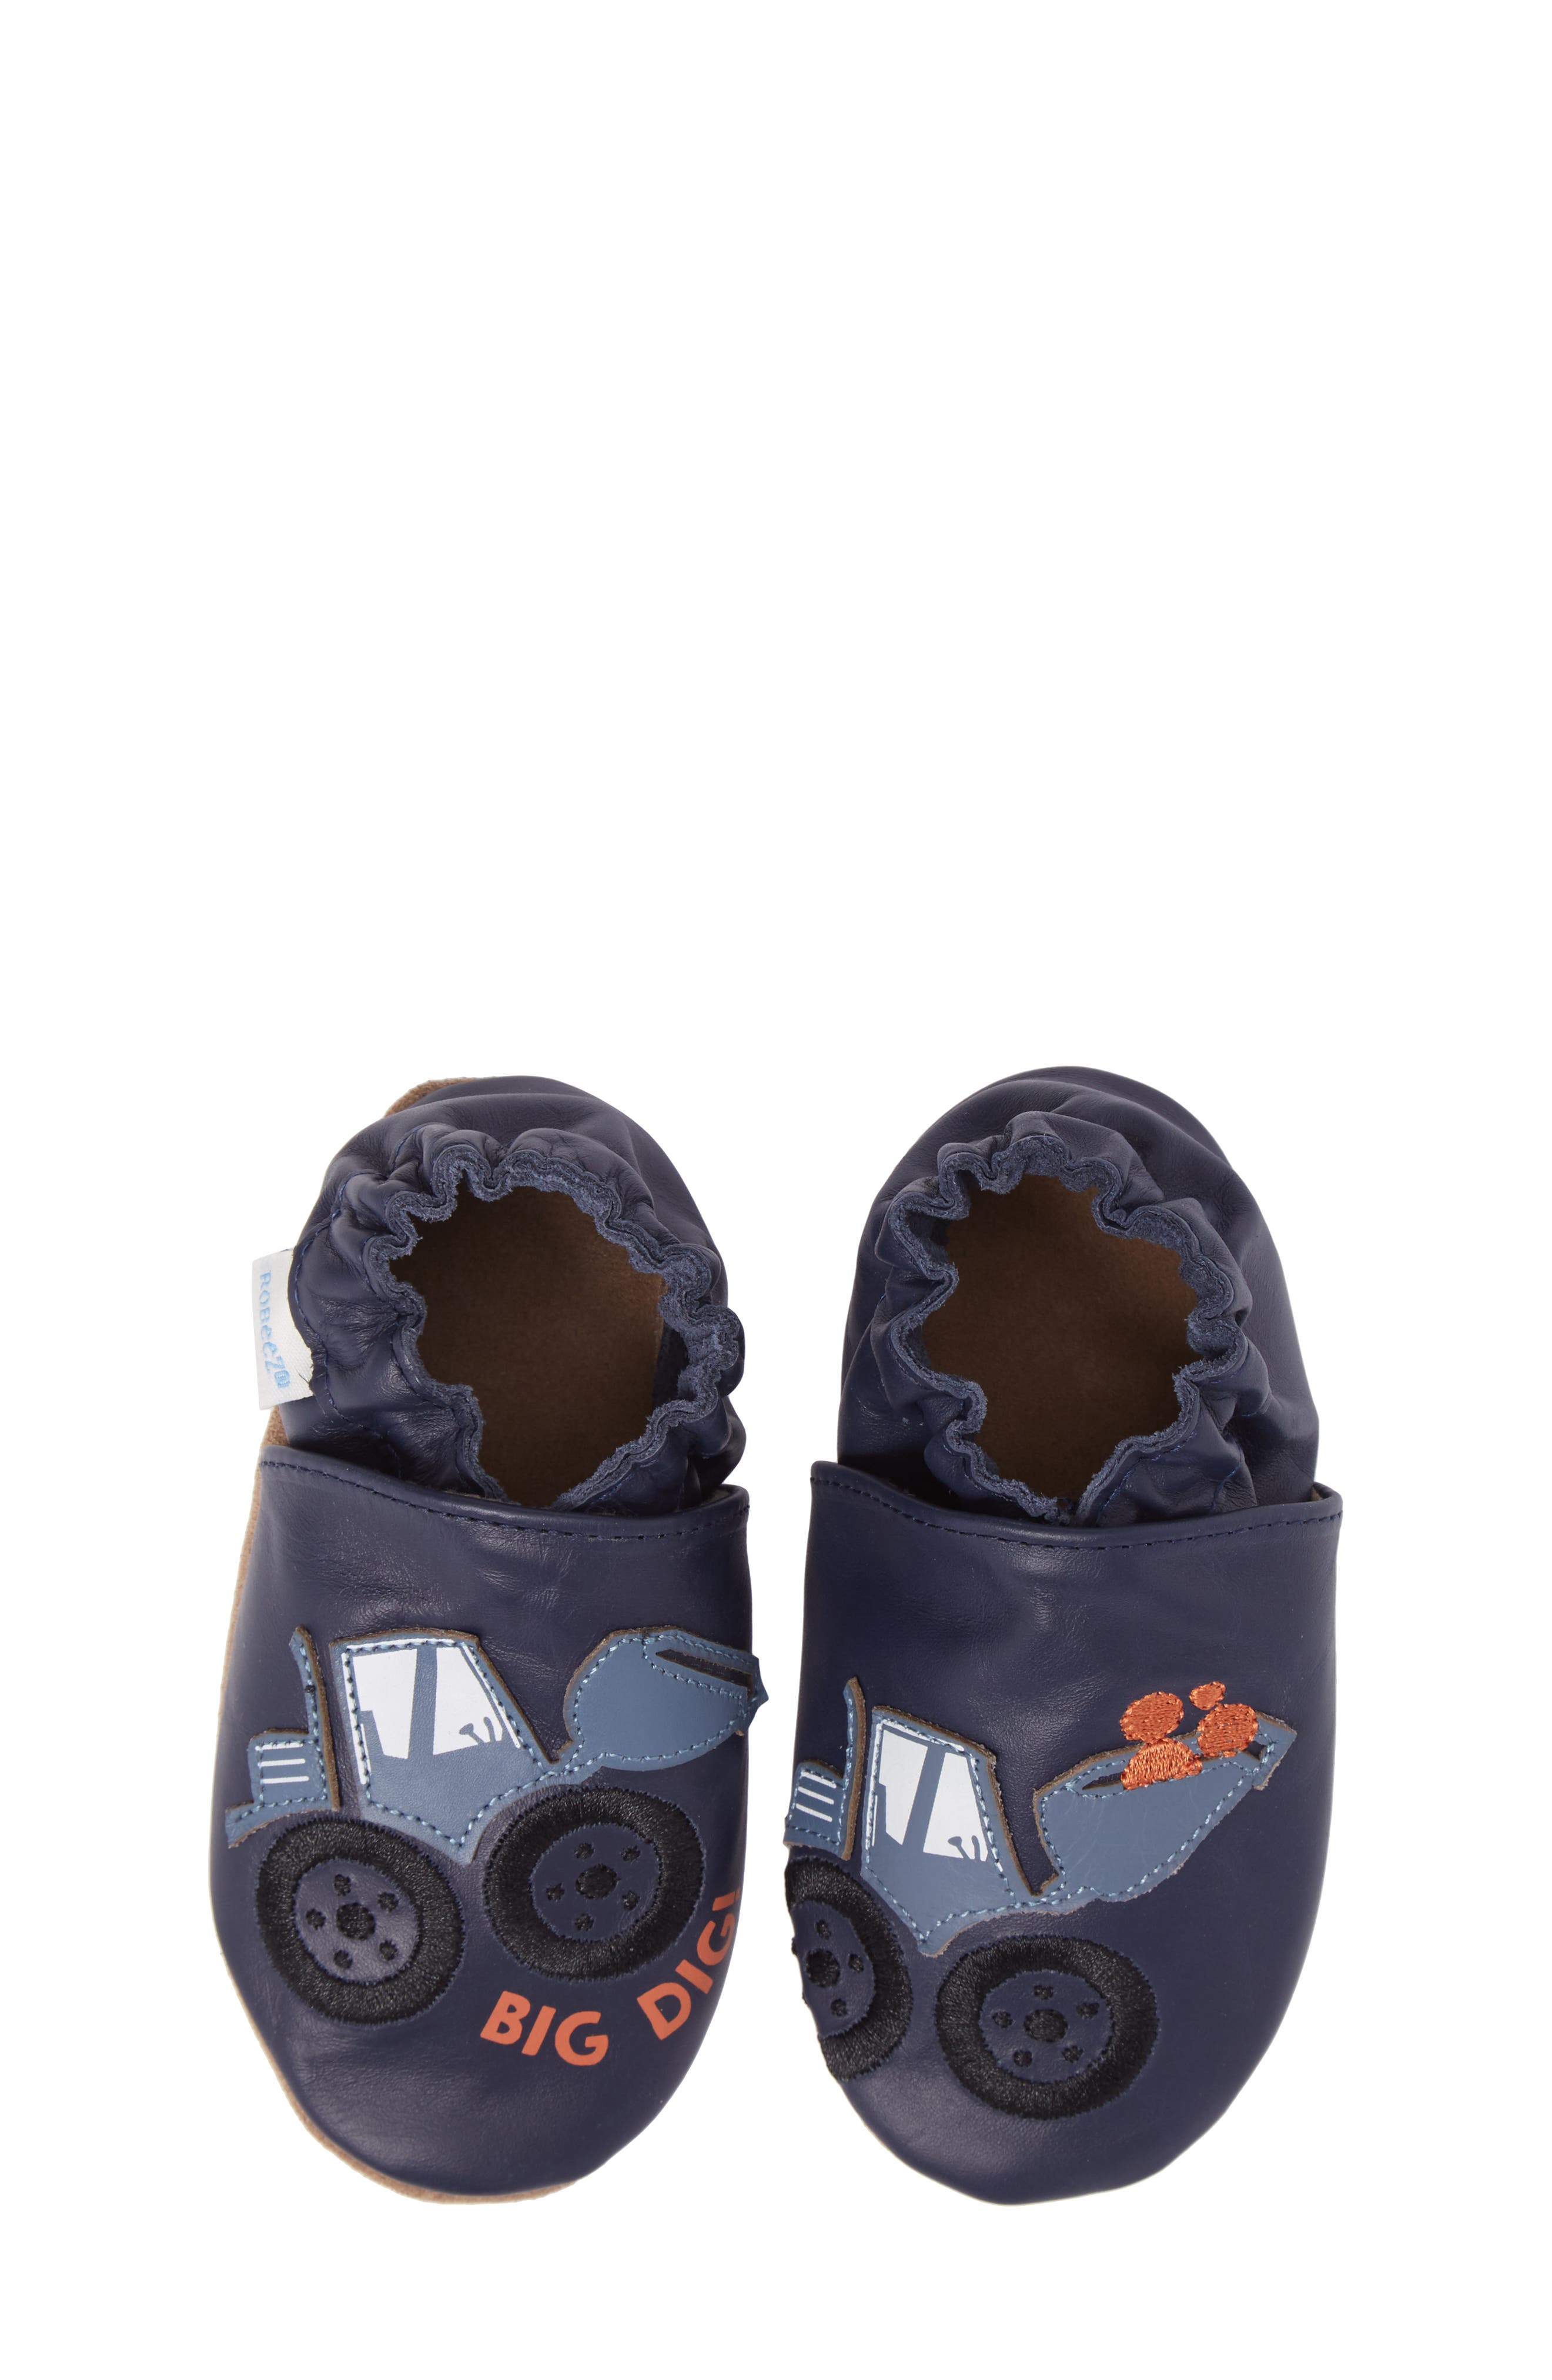 Alternate Image 1 Selected - Robeez® Big Dig Crib Shoe (Baby & Walker)